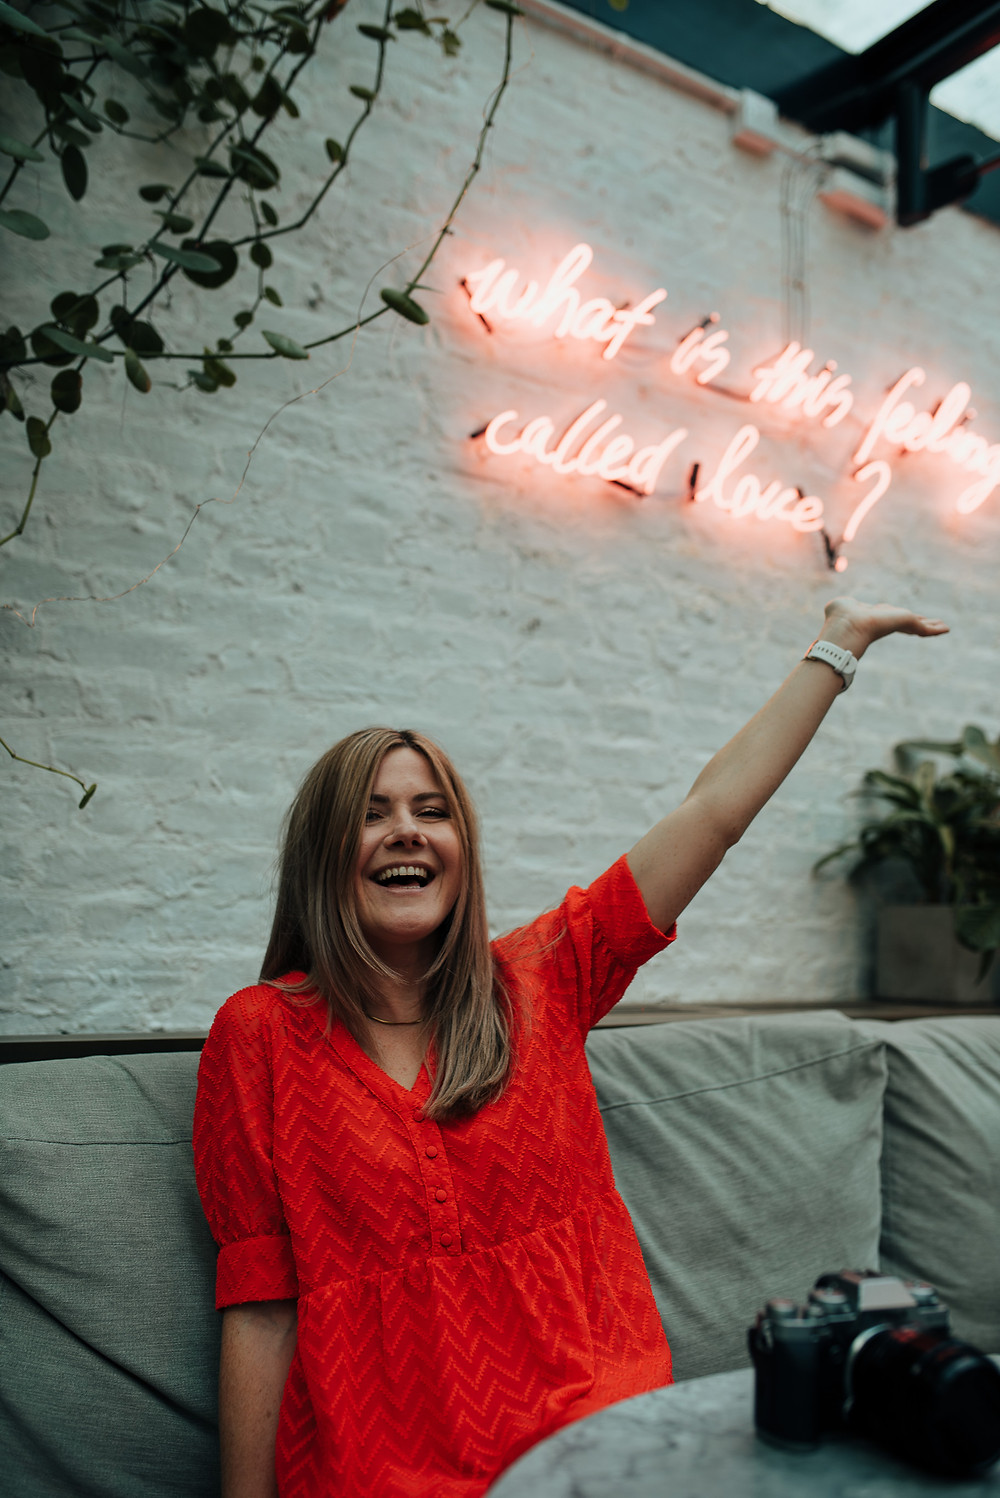 Photo of Tash Busta Photography looking delighted under neon sign about love